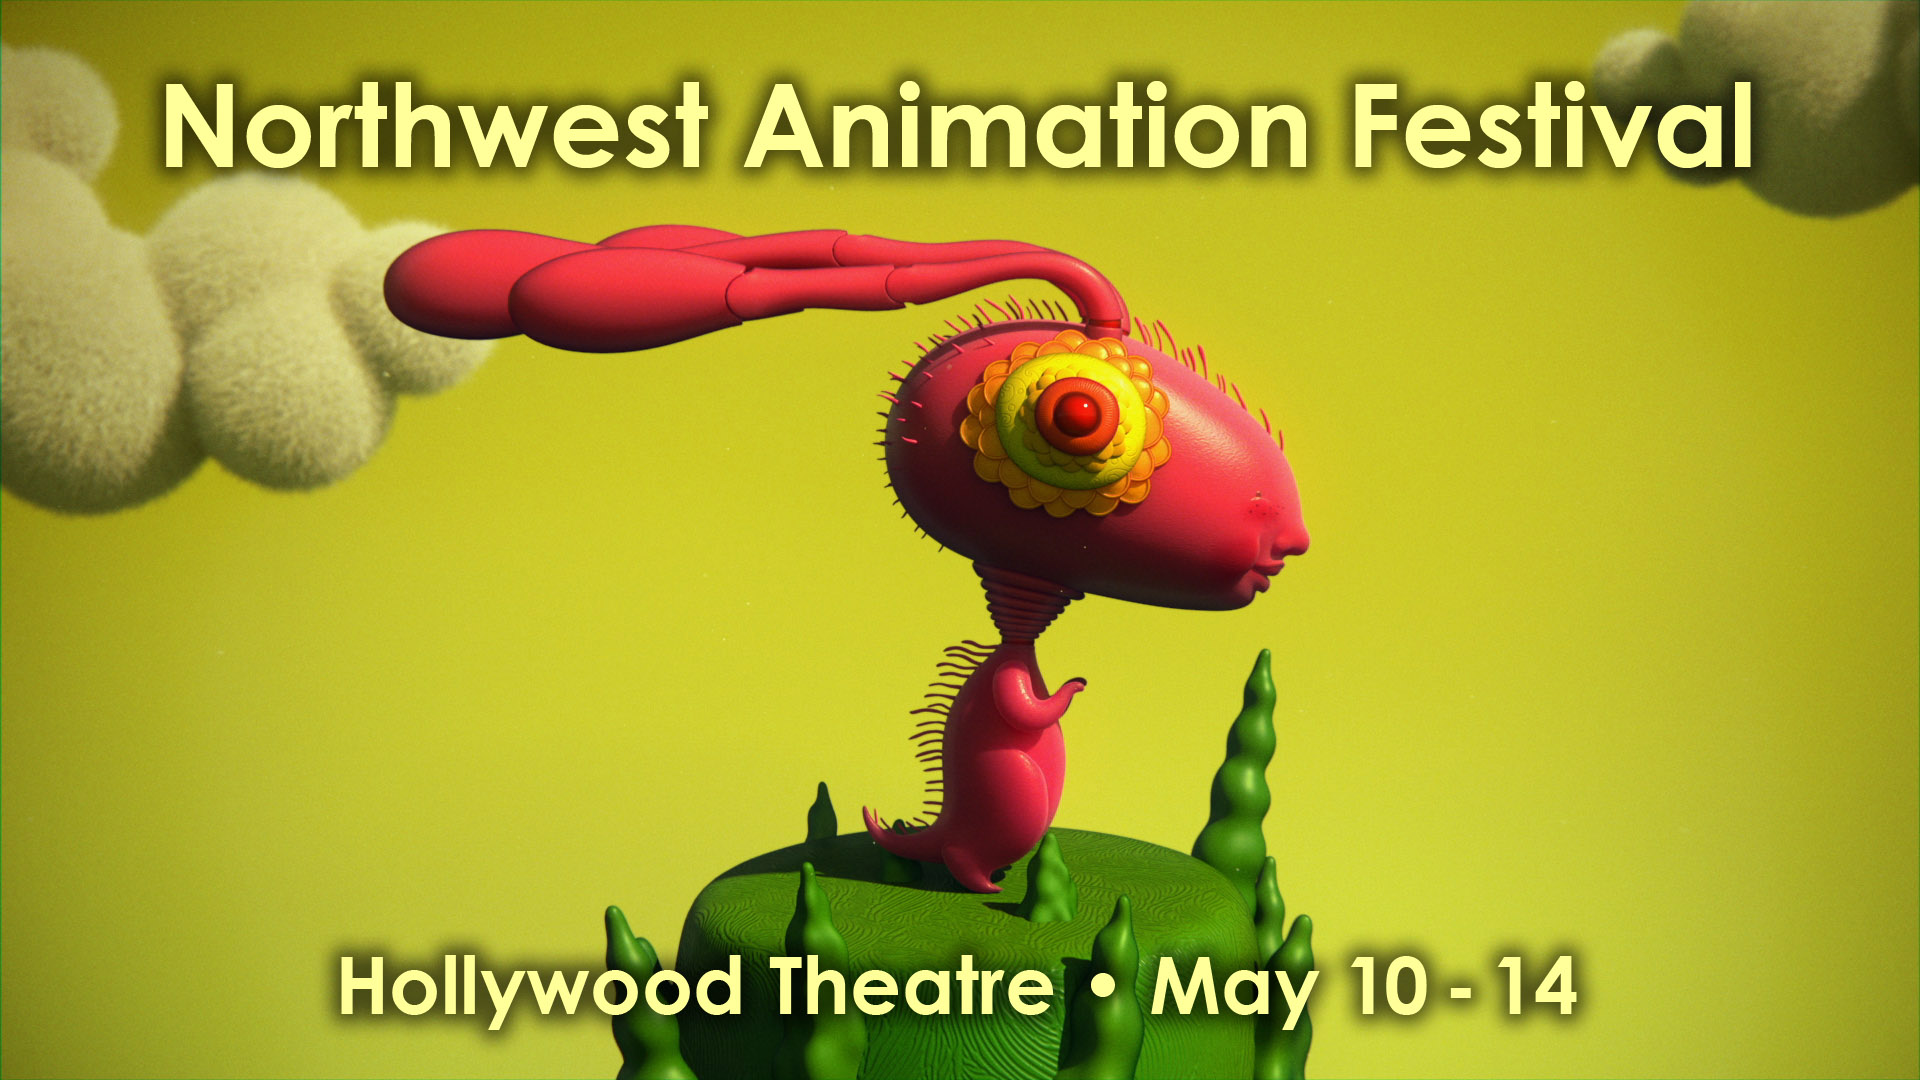 nw animation fest 2017 slide_v2